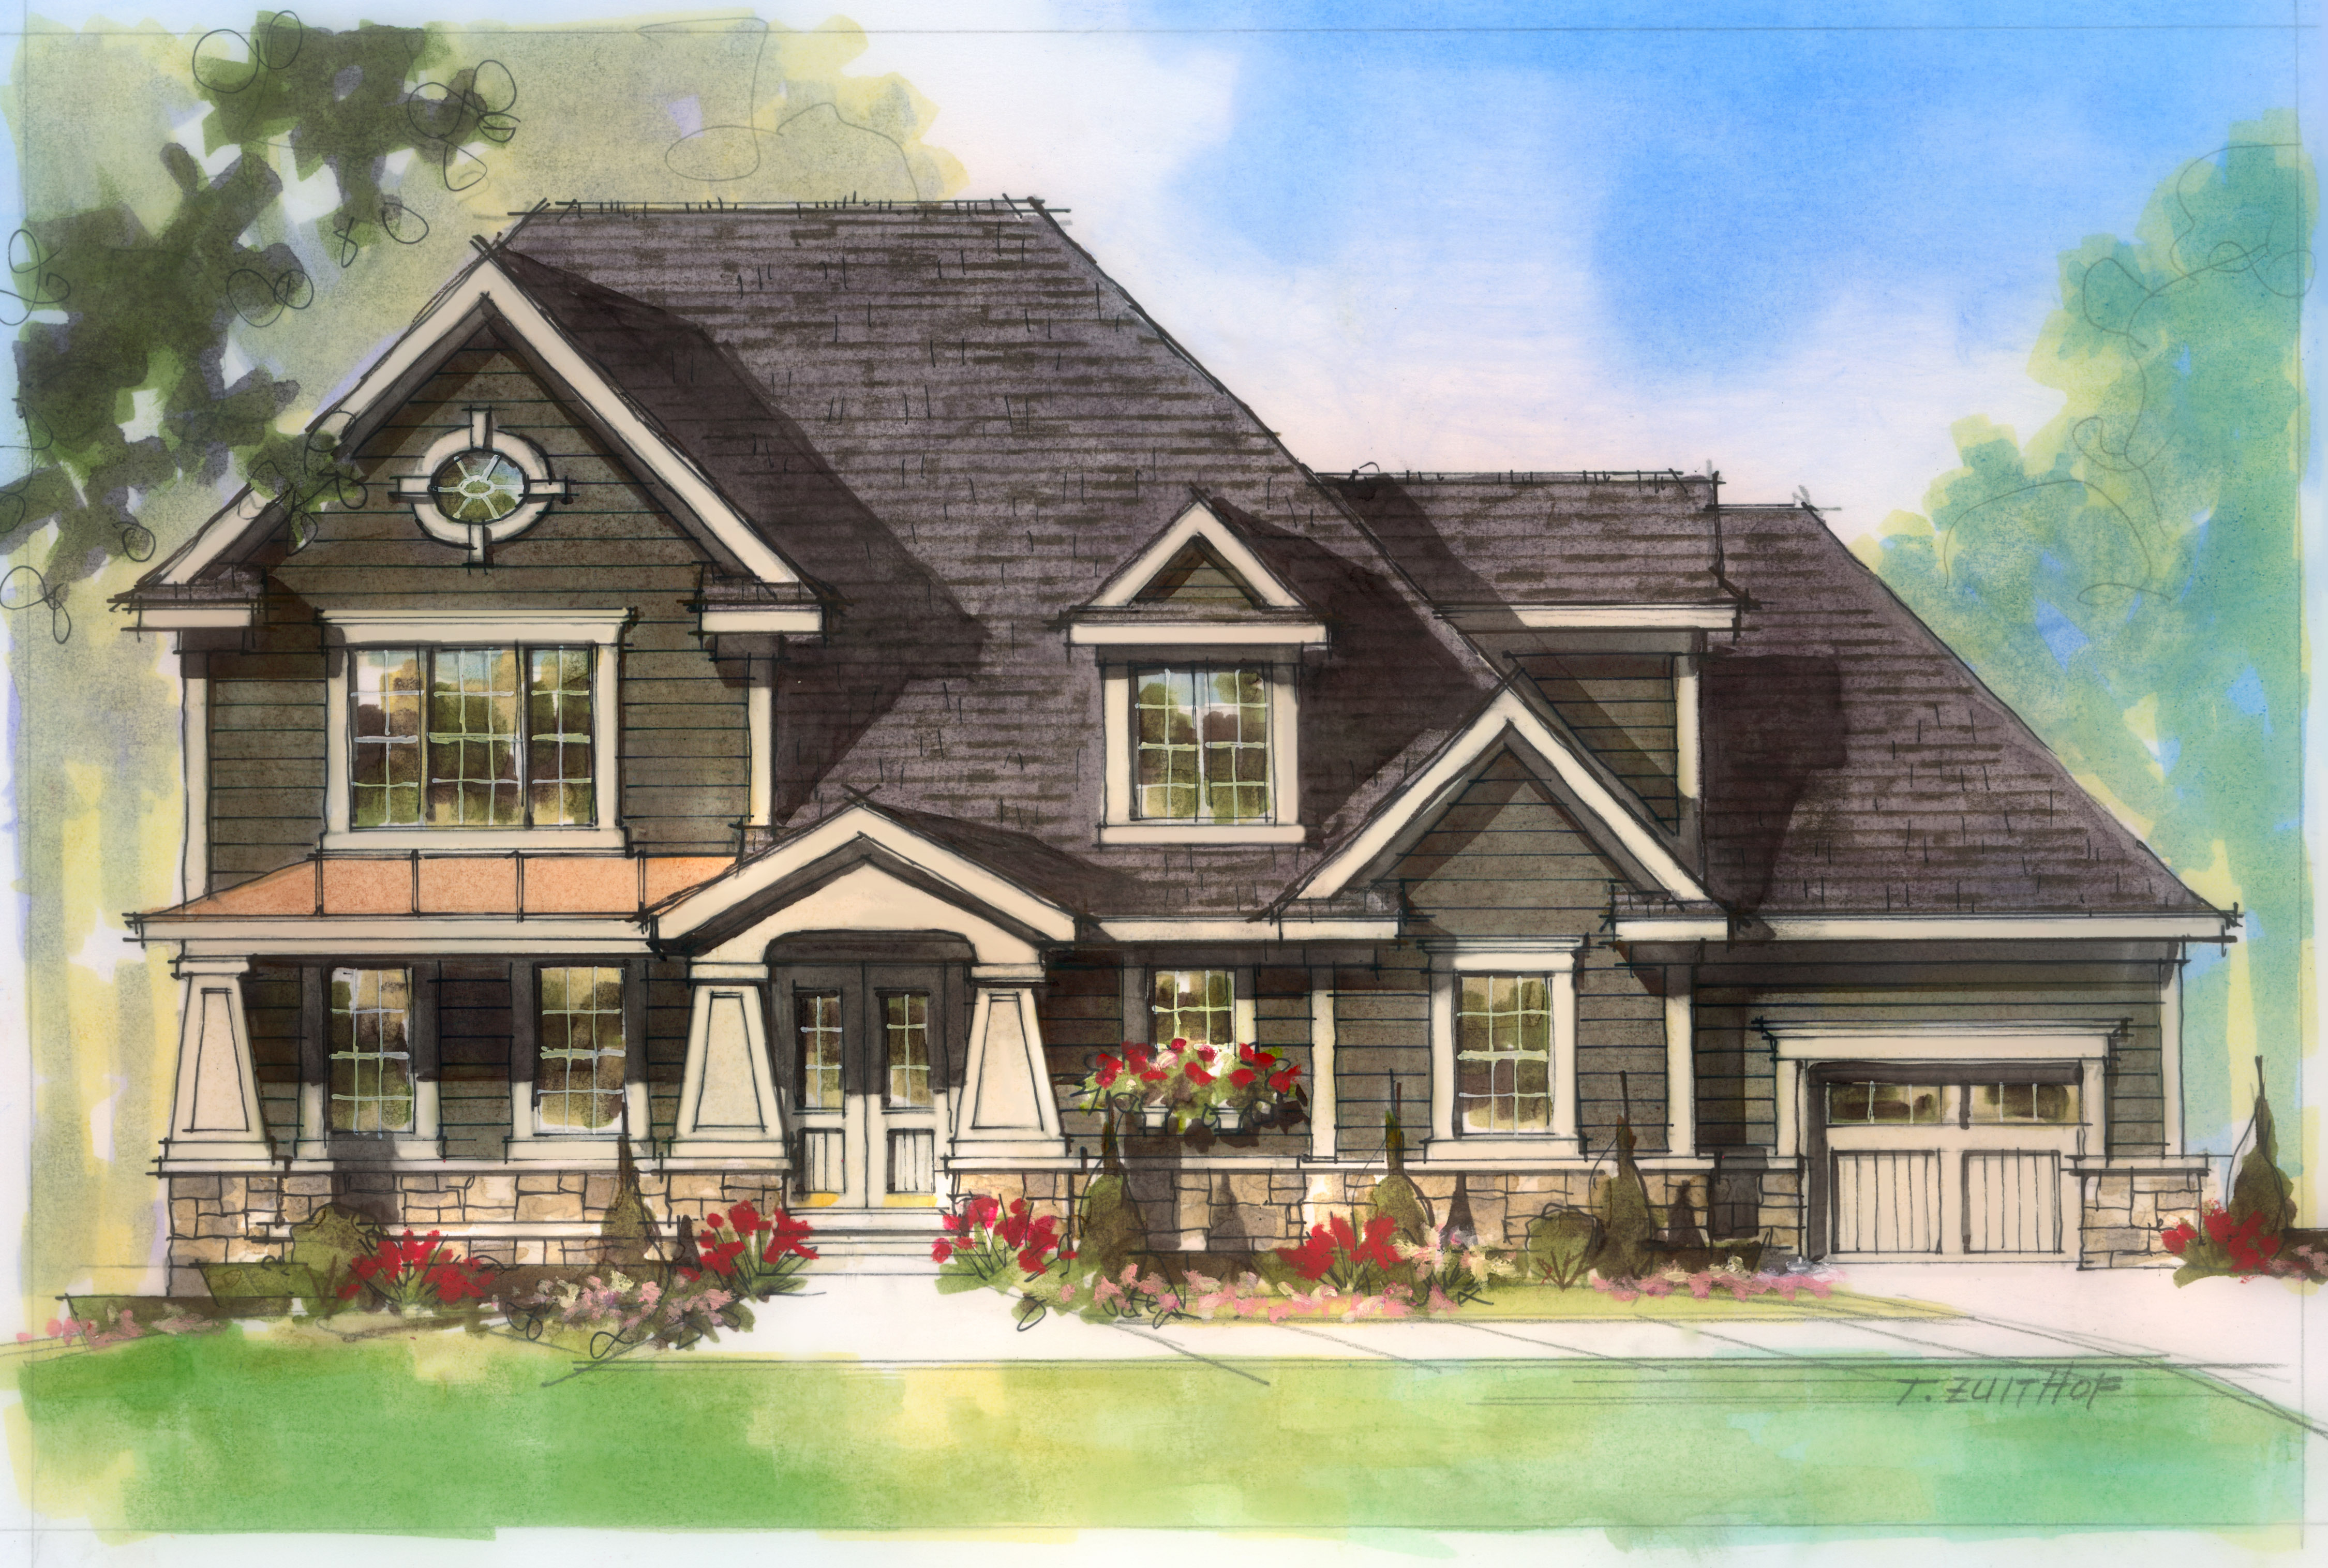 Single Family Home for Sale at 4943 Spring Farm Avenue (Proposed Build) Prospect, Kentucky 40059 United States